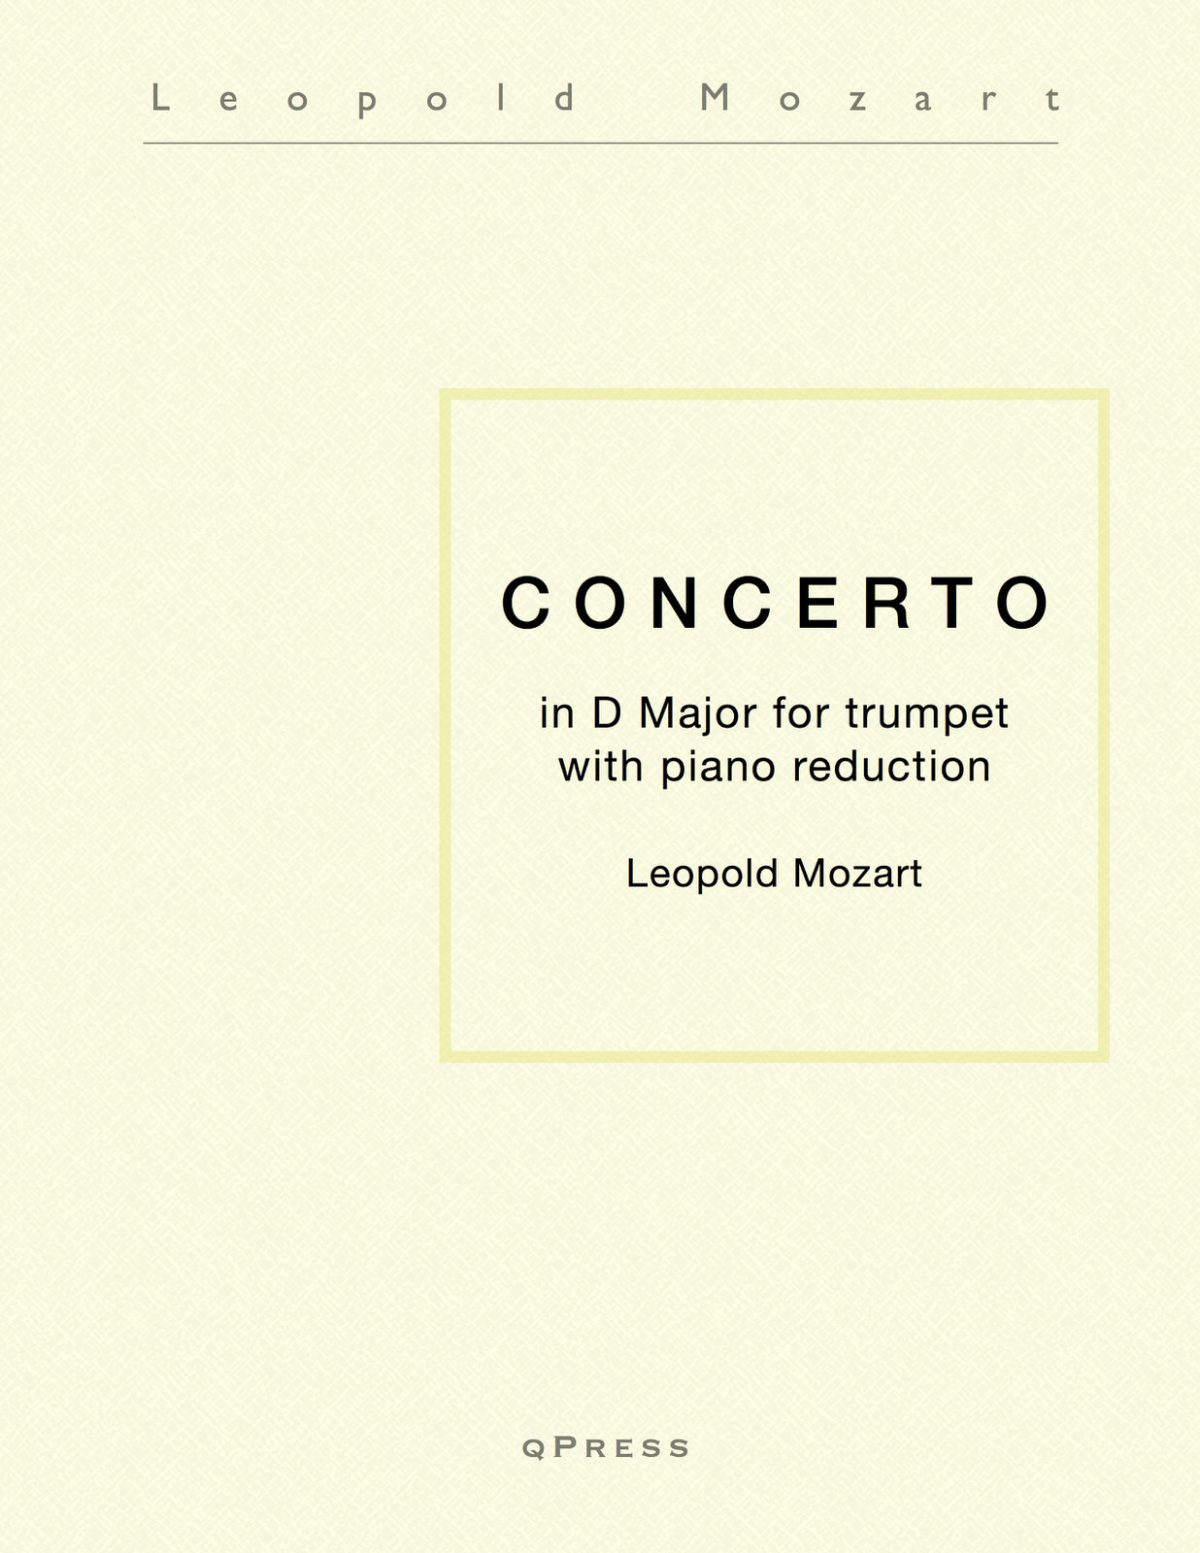 Mozart, Leopold, Concerto in D Major for Trumpet